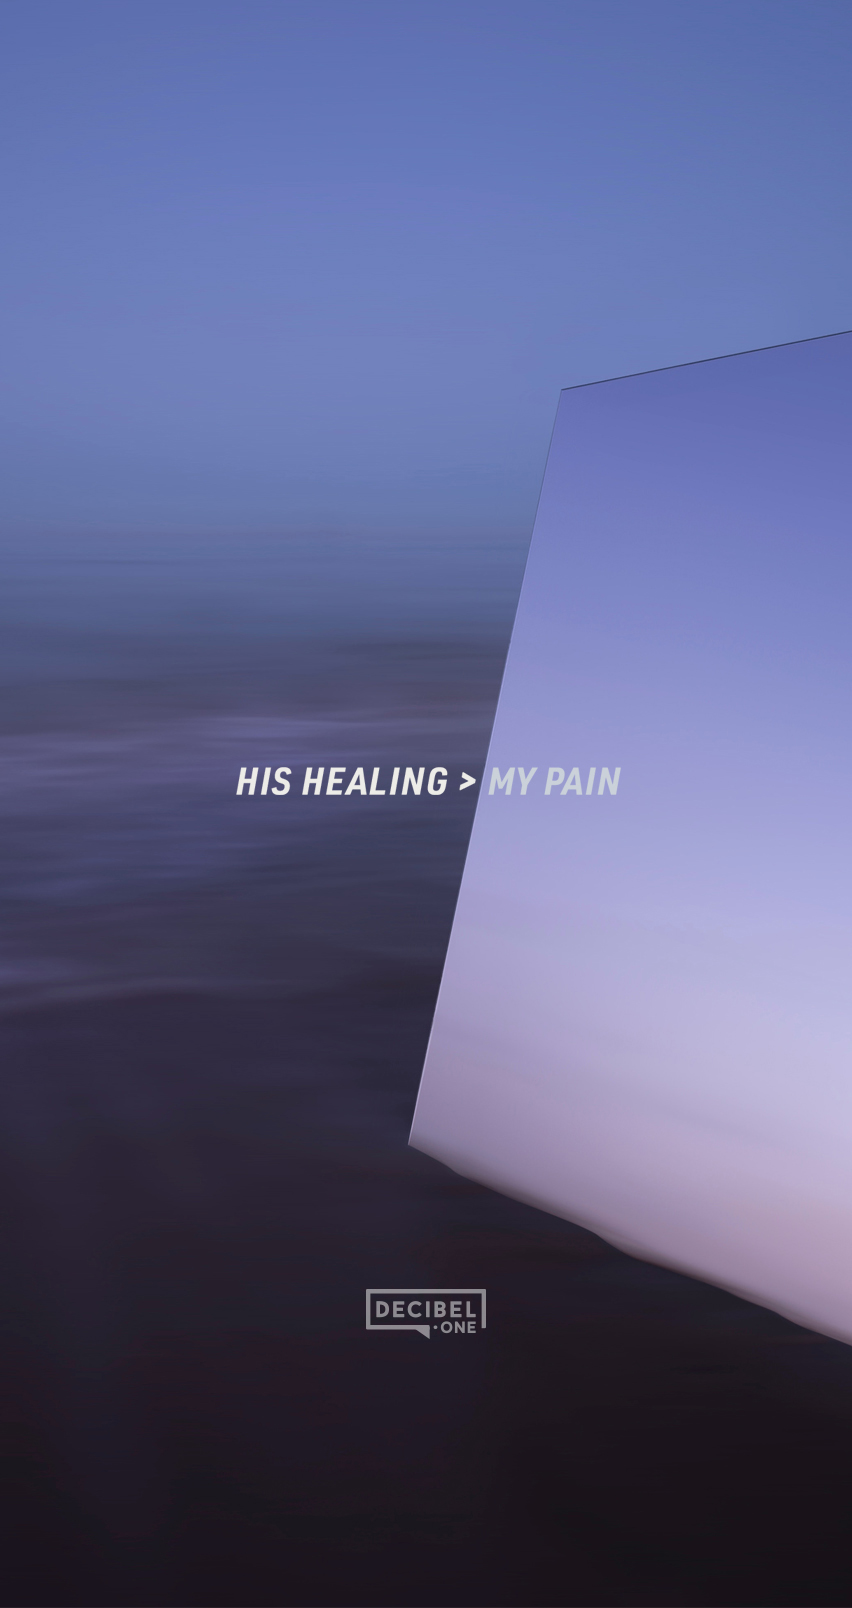 HIS HEALING > MY PAIN